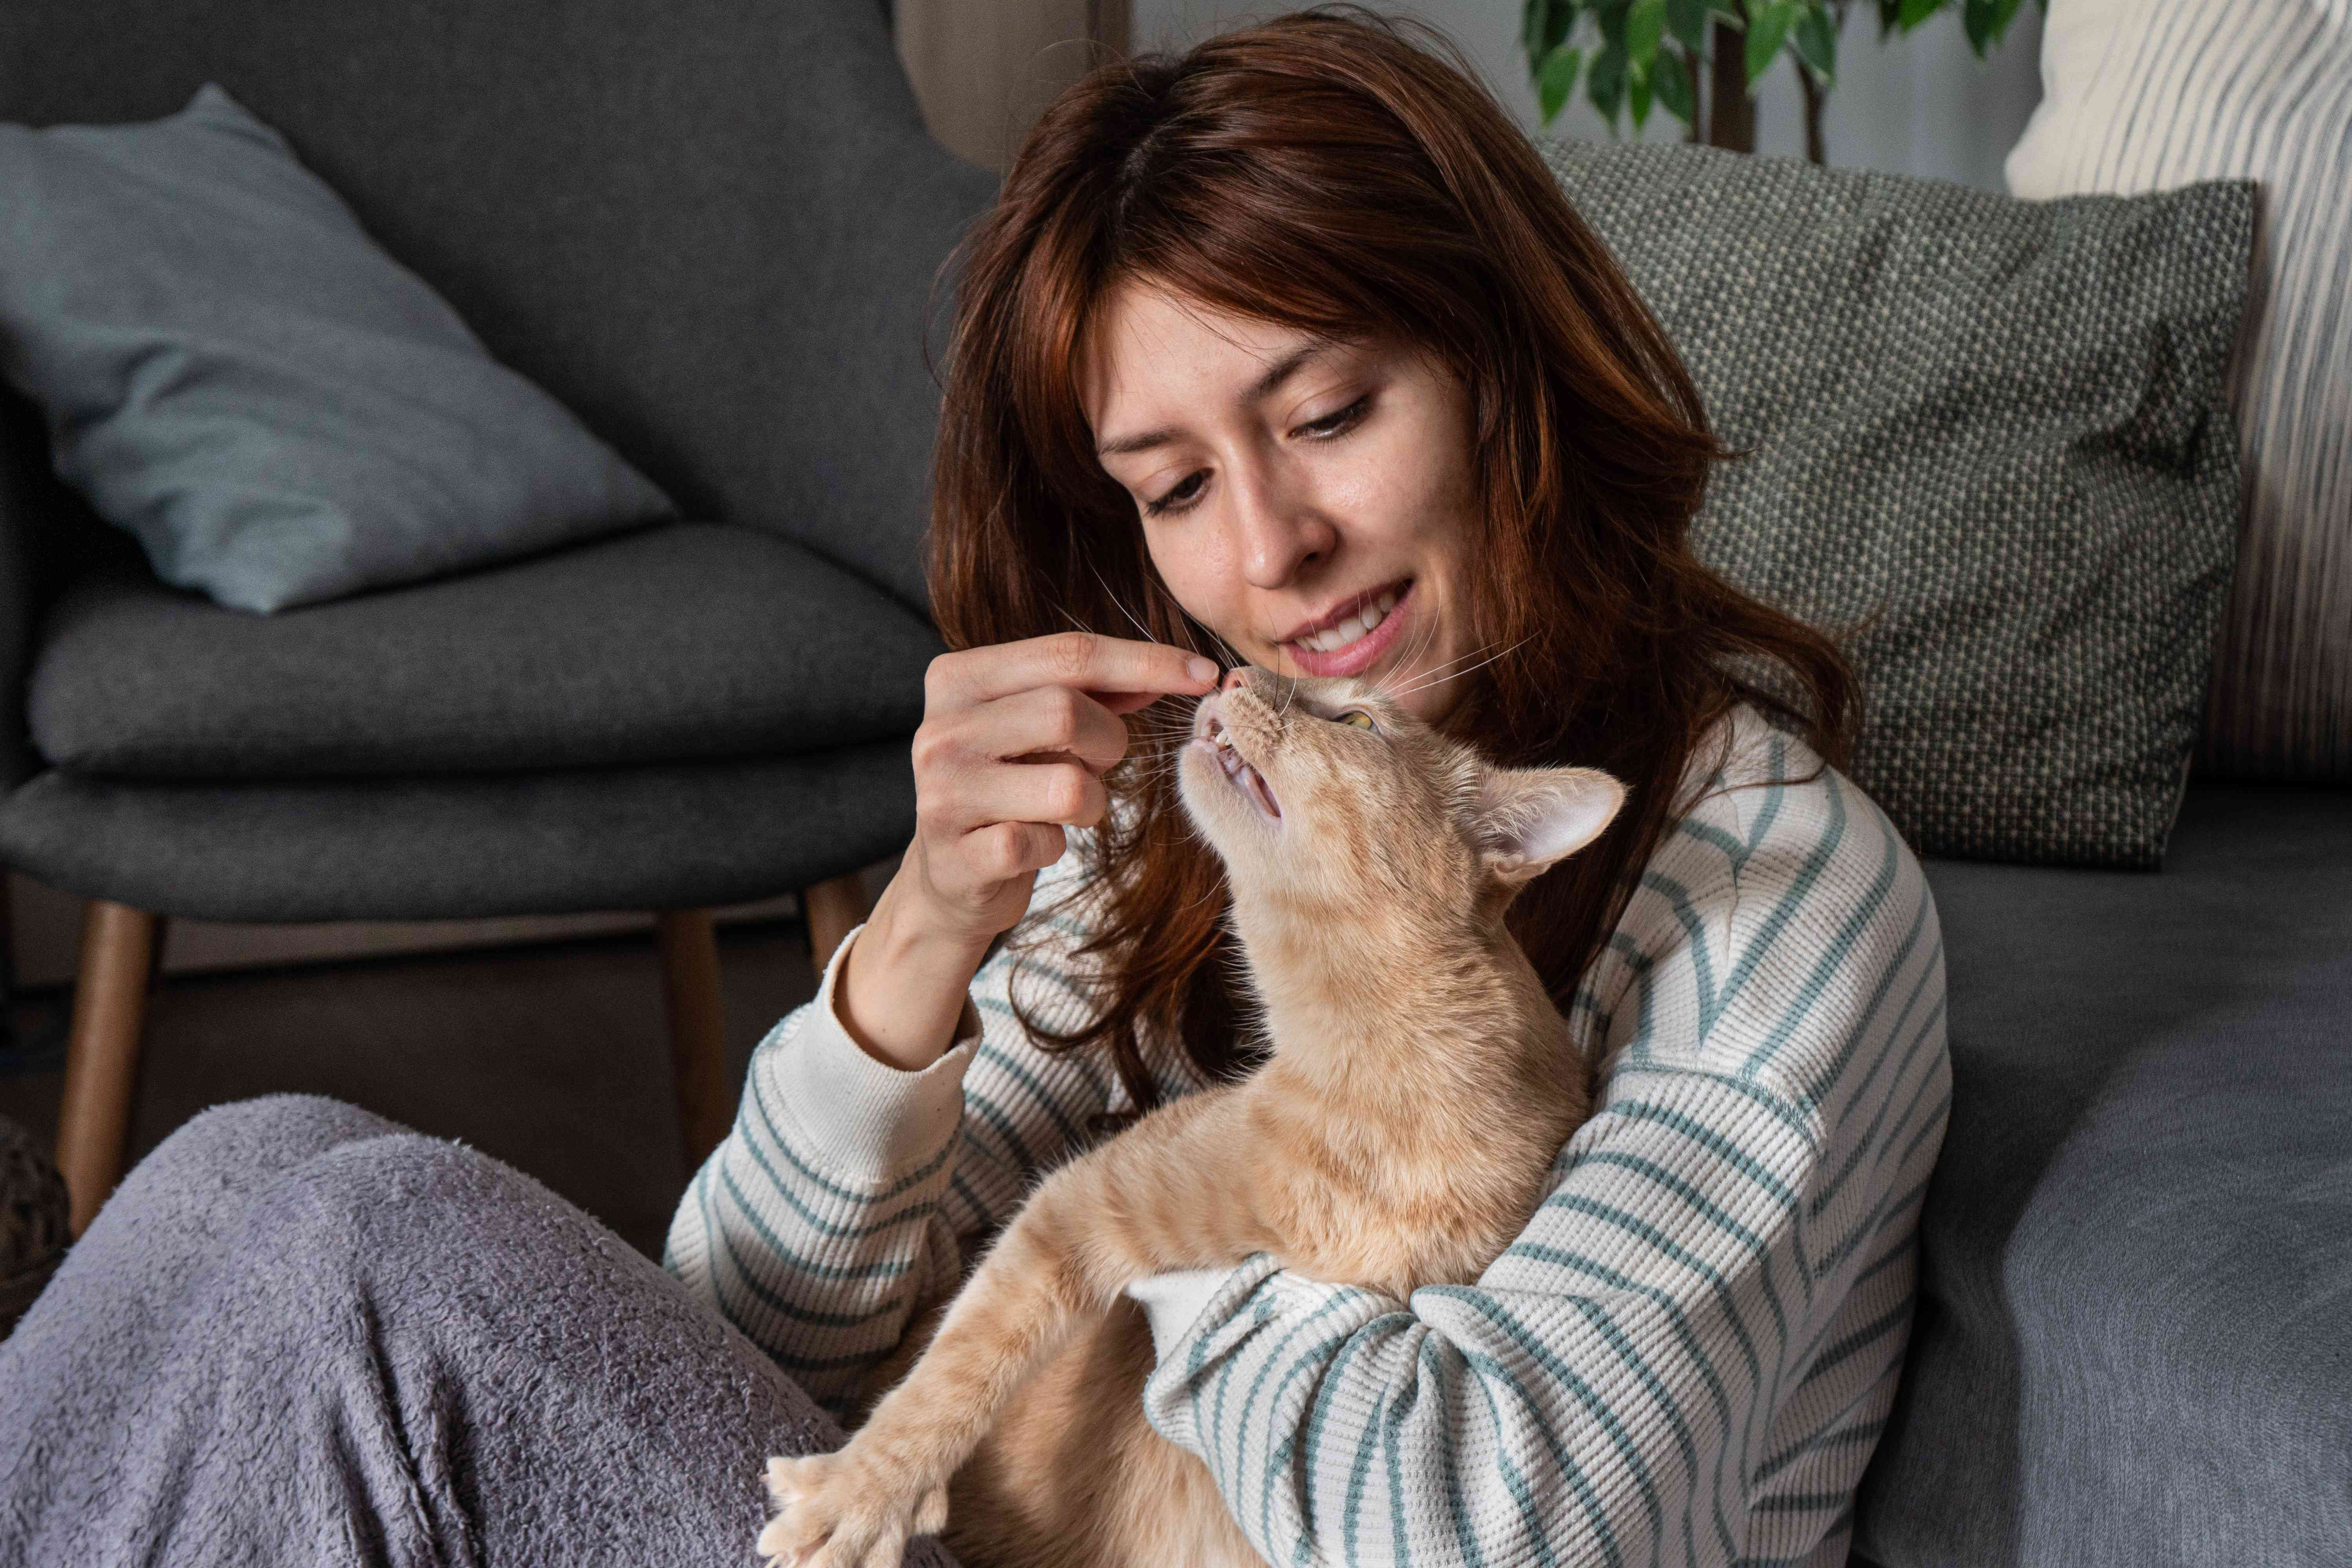 woman hugs kitty while booping on nose